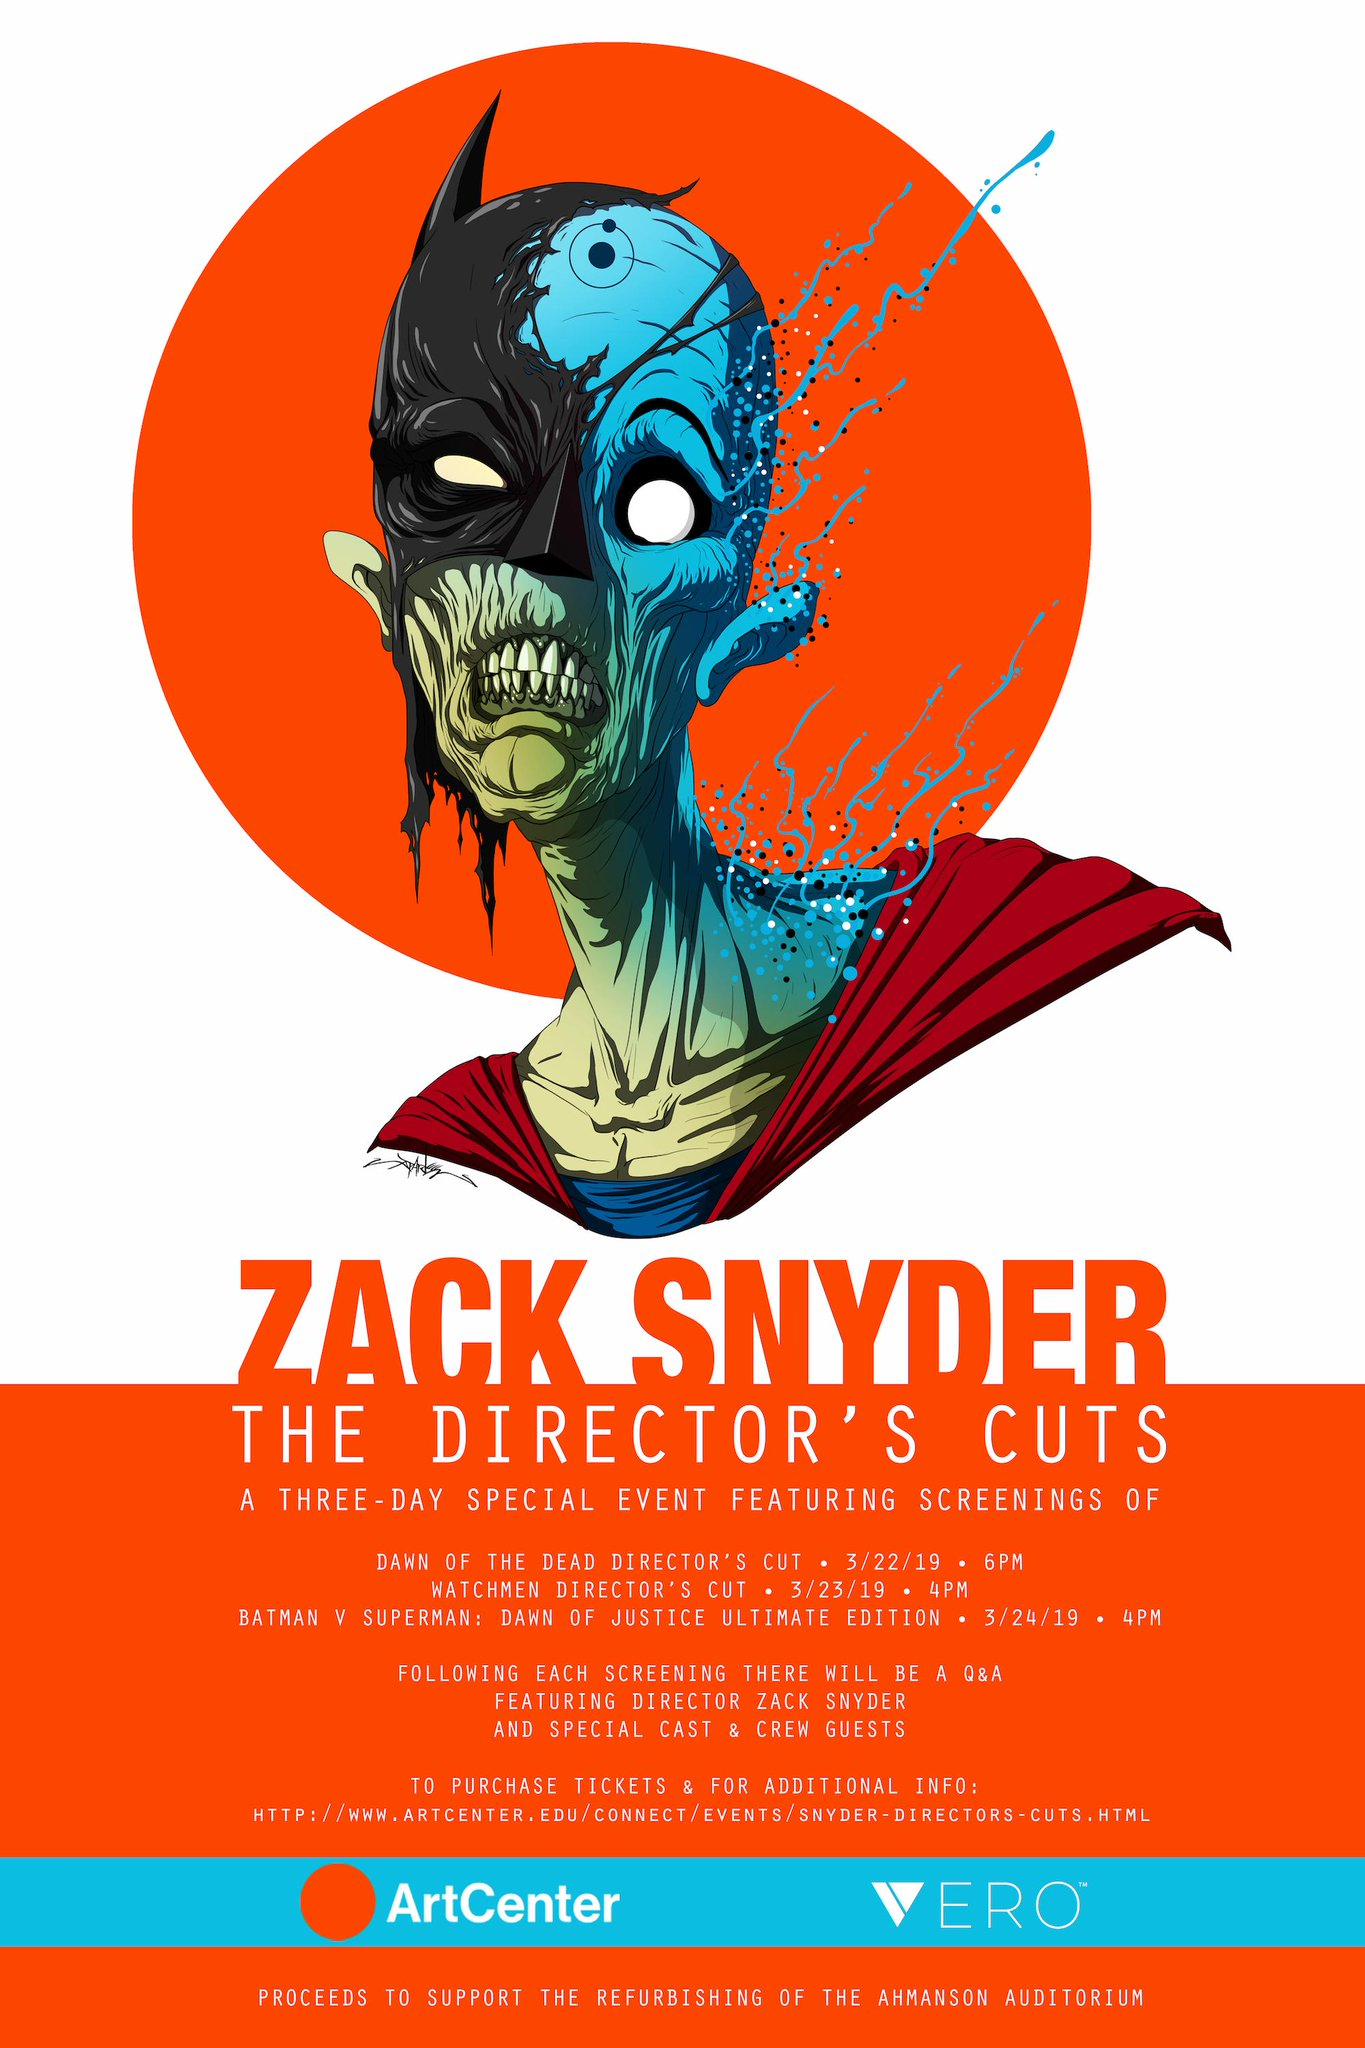 Zack Snyder Batman vs Superman Directors Cut event